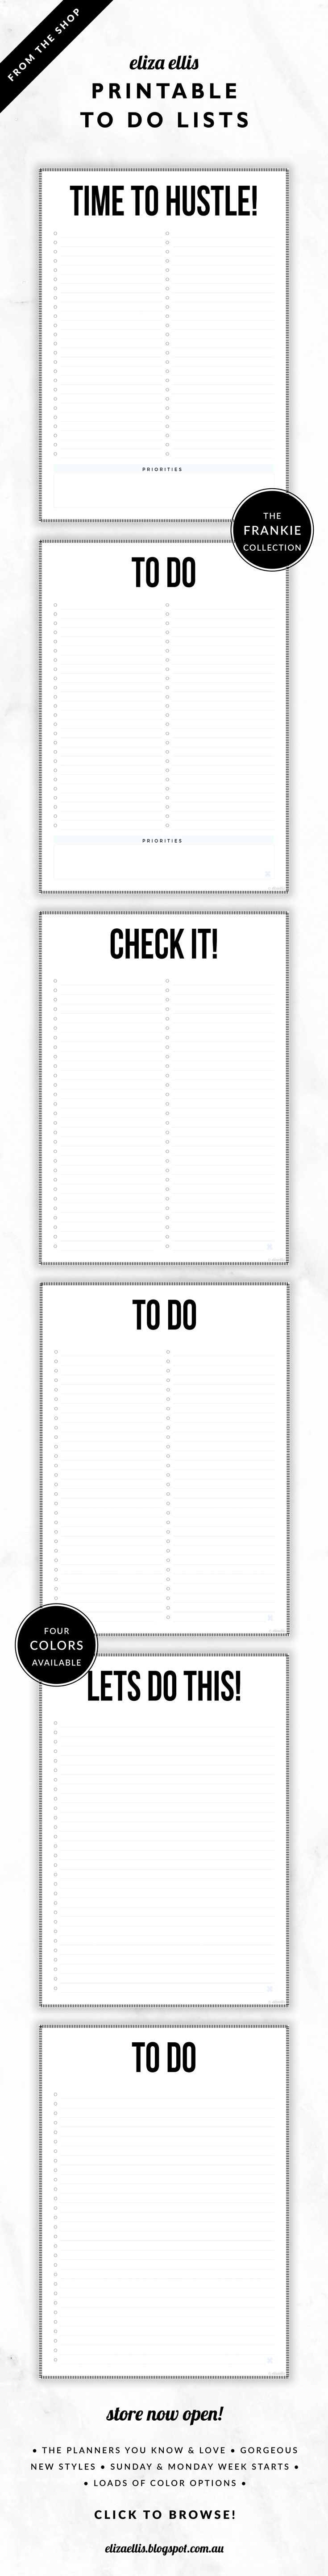 Printable To Do Lists // The Frankie Collection by Eliza Ellis. Classic, bold design with hash border. Available in 4 colors –  silk, mist, smoke and bone. Documents print to A4 or A5.